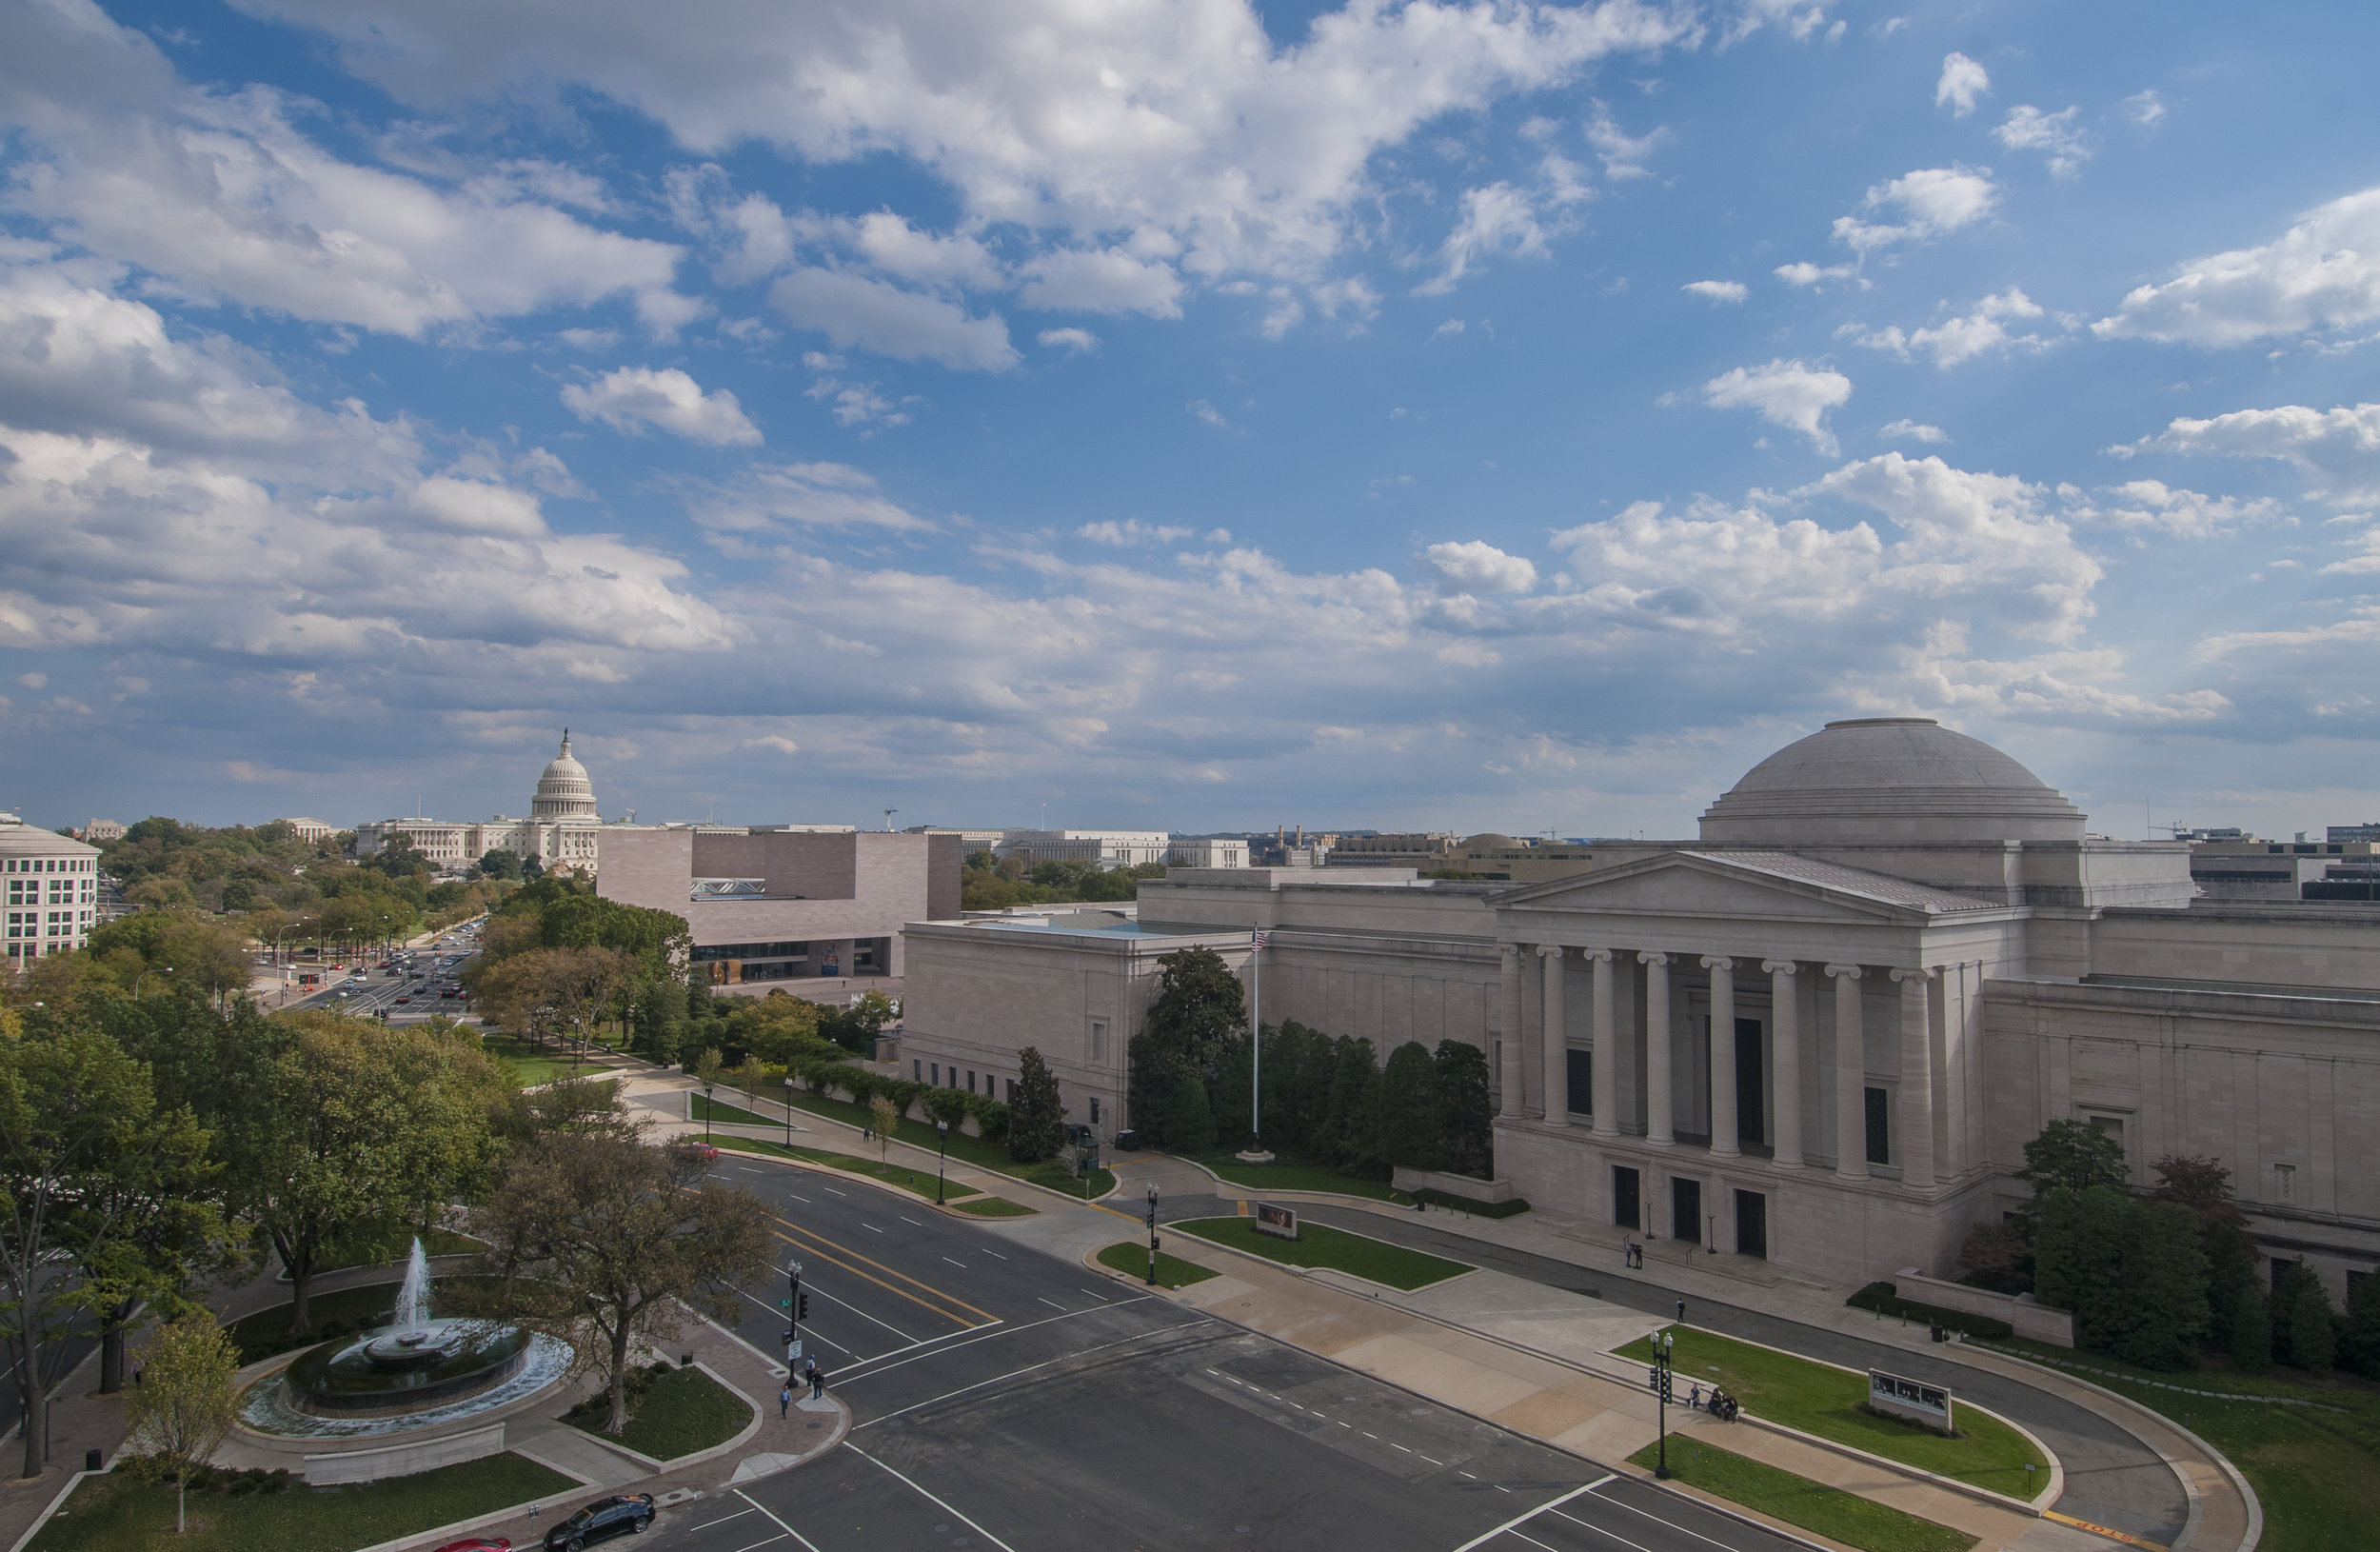 The National Gallery of Art. (Photo compliments of the National Gallery of Art)